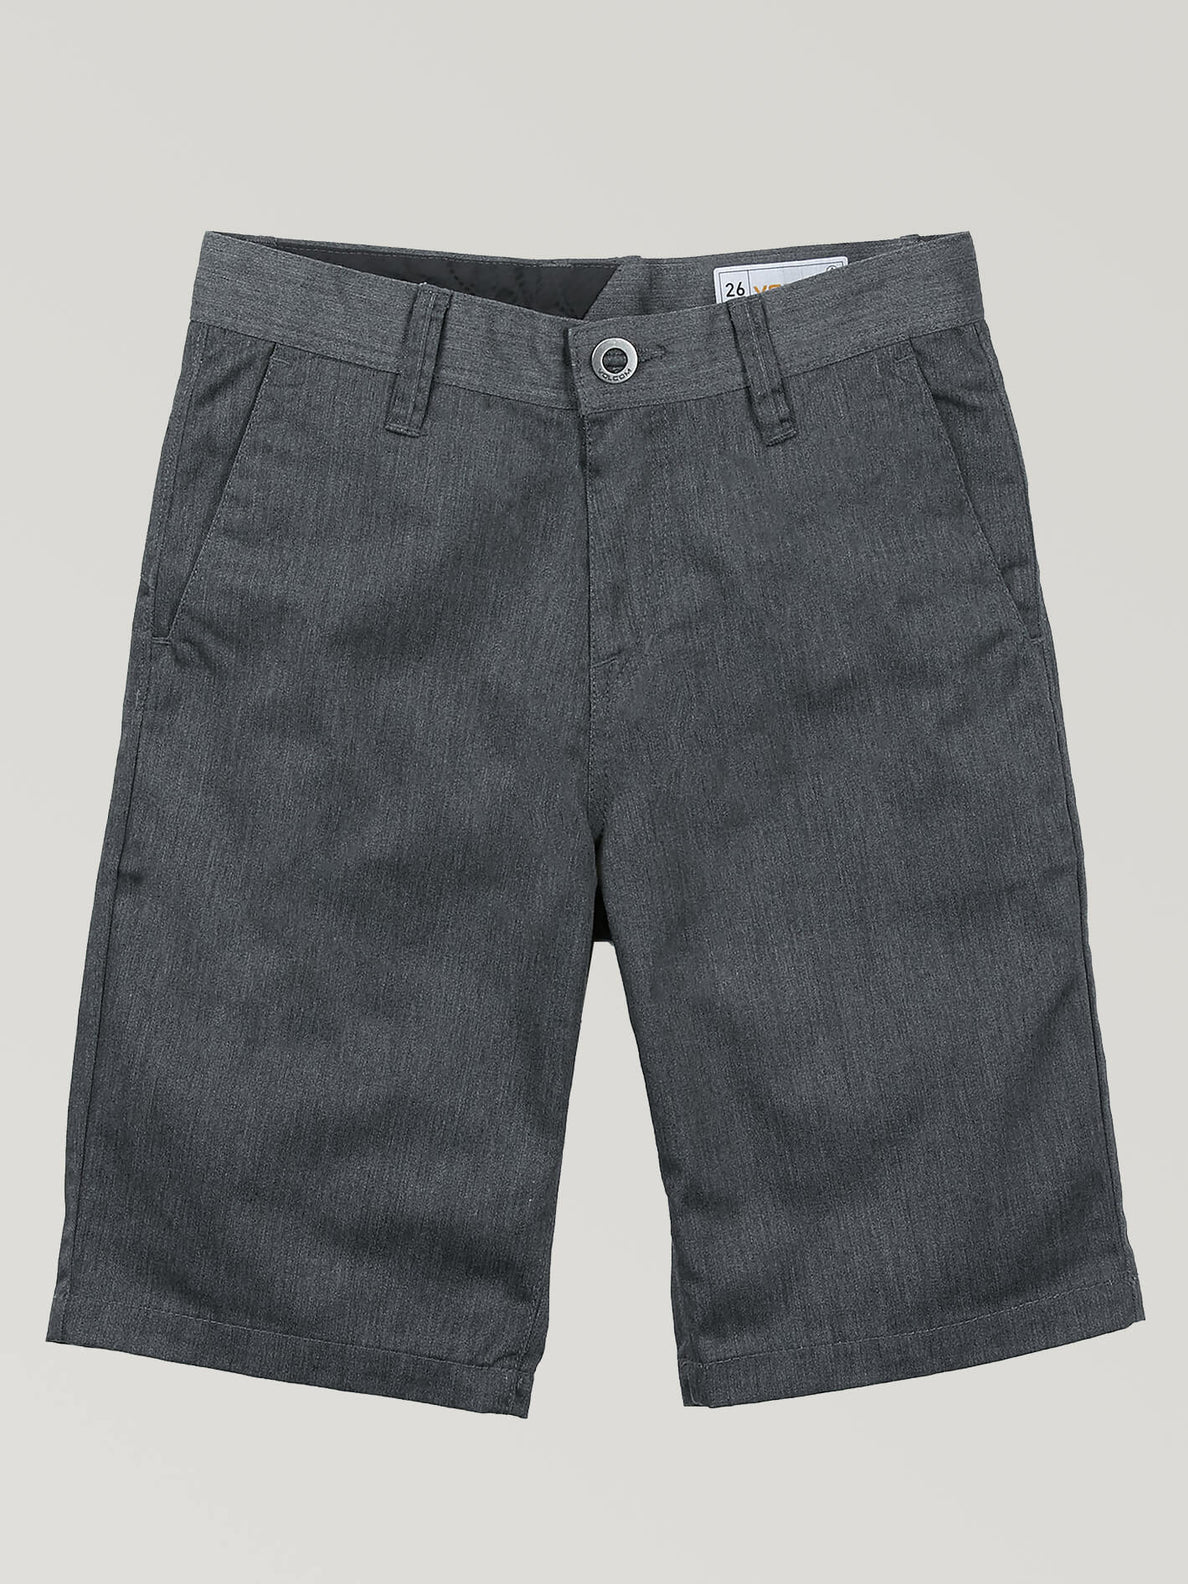 frickin-chino-short-charcoal-heather-1(Kids) (C0911800_CHH) [F]